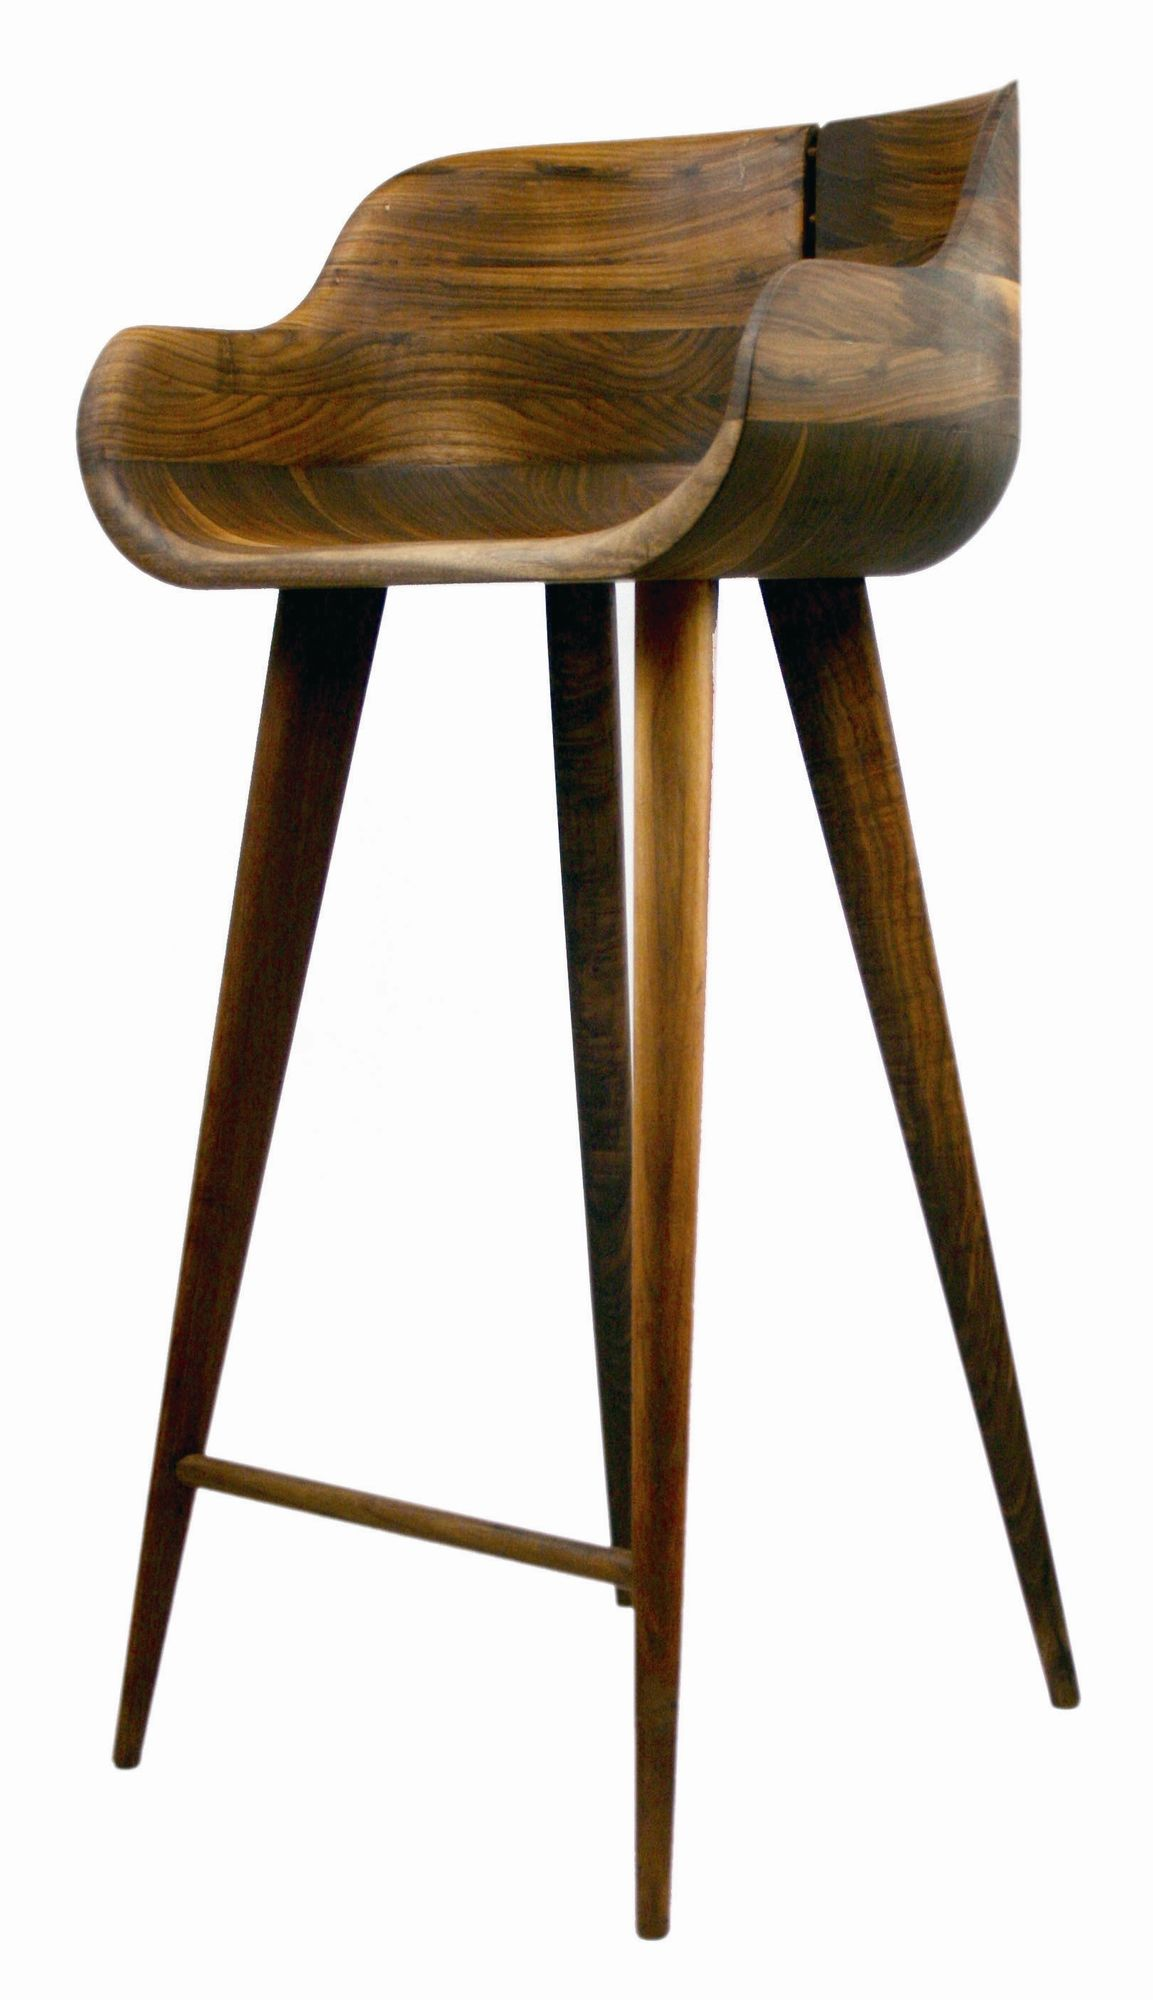 Modern Wood Counter Stool Walnut Counter Stool Just What I Need For My Bar Seeing